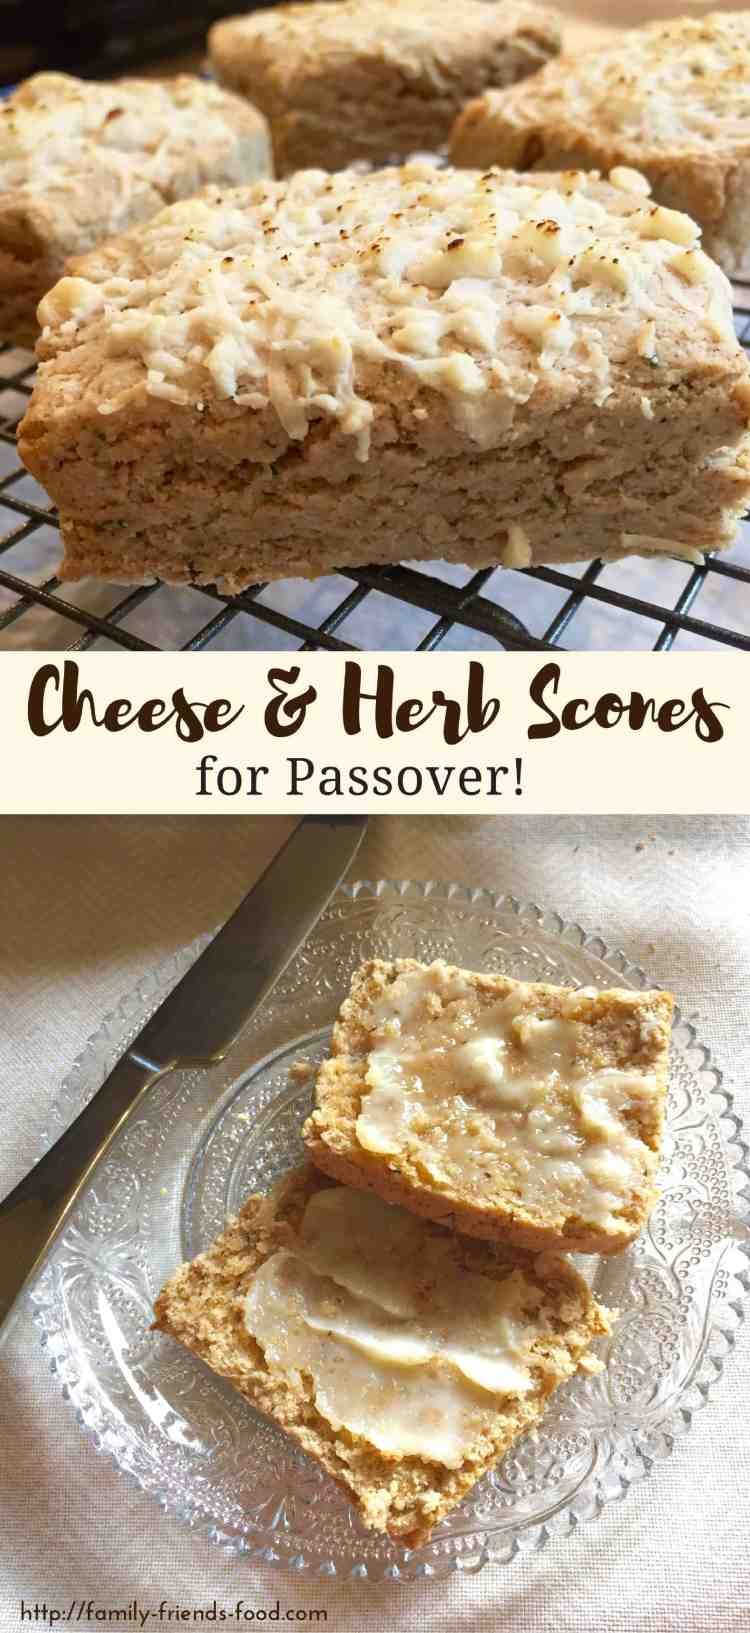 These tasty, cheesy savoury scones have a light, flaky texture & a delicious flavour, & are completely kosher for Passover! Enjoy warm with loads of butter.